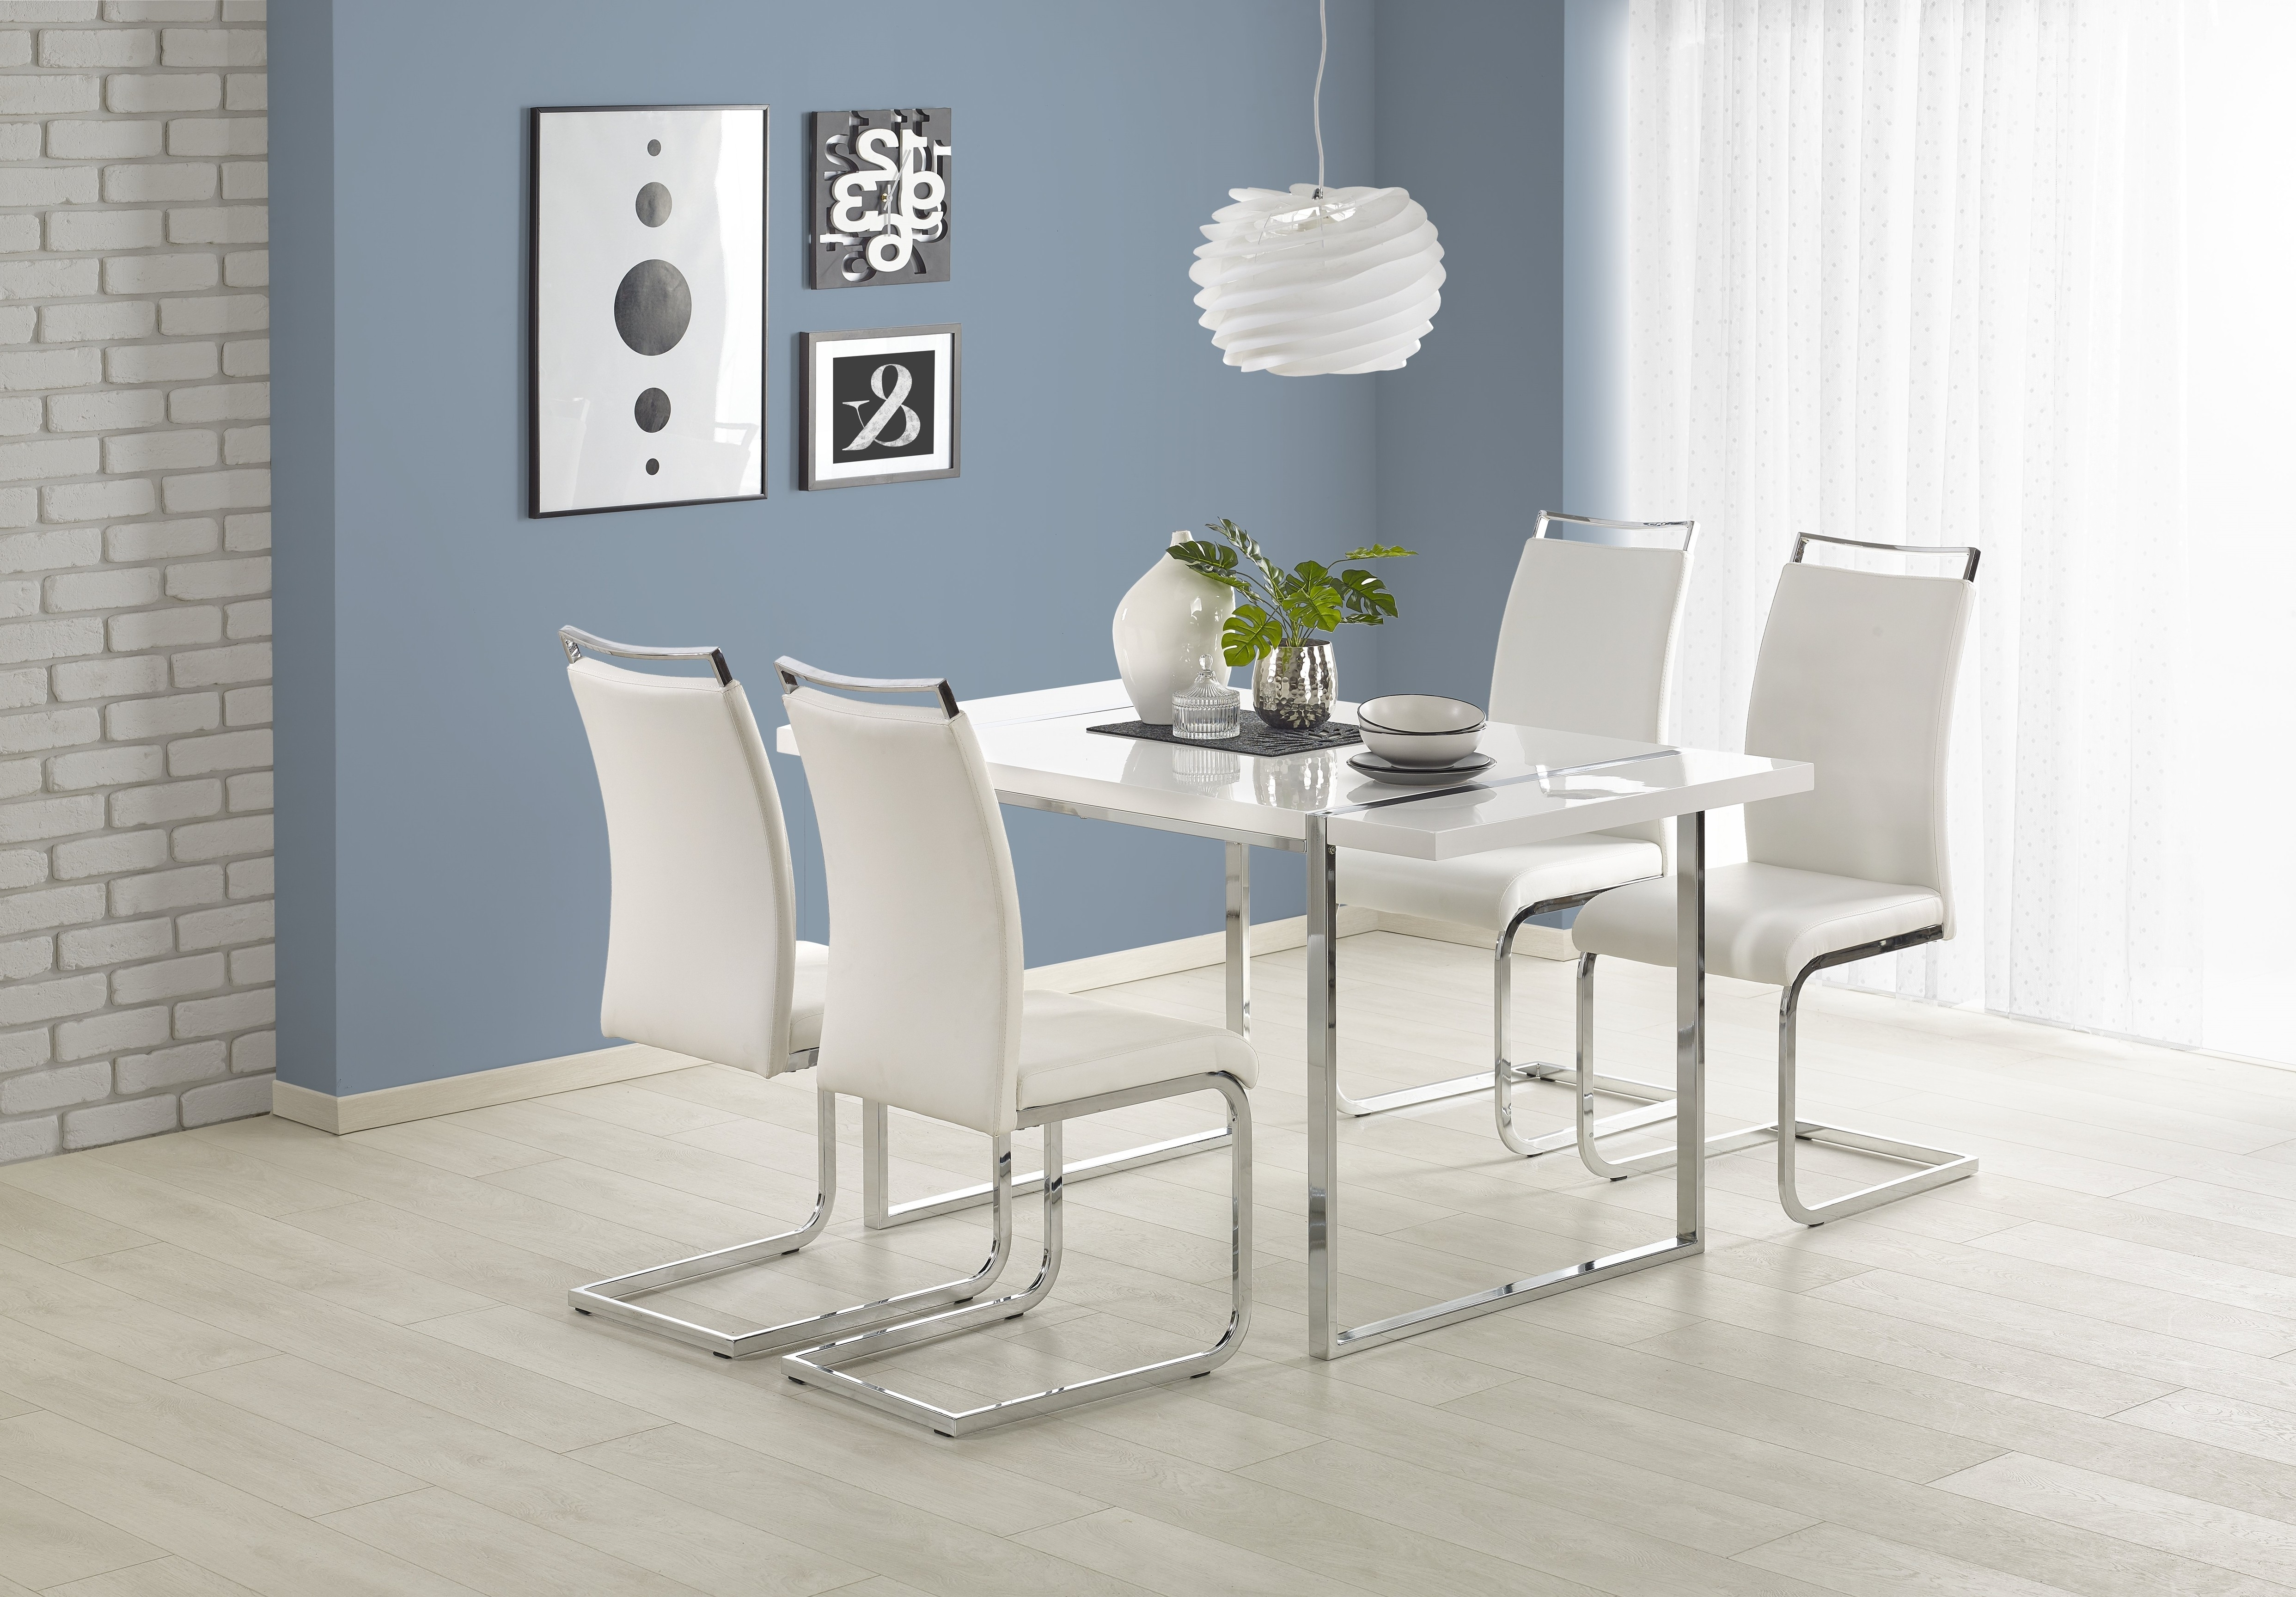 Leo High Gloss White Narrow Dining Table 140Cm Pertaining To Most Up To Date White Gloss Dining Tables 140Cm (View 7 of 25)